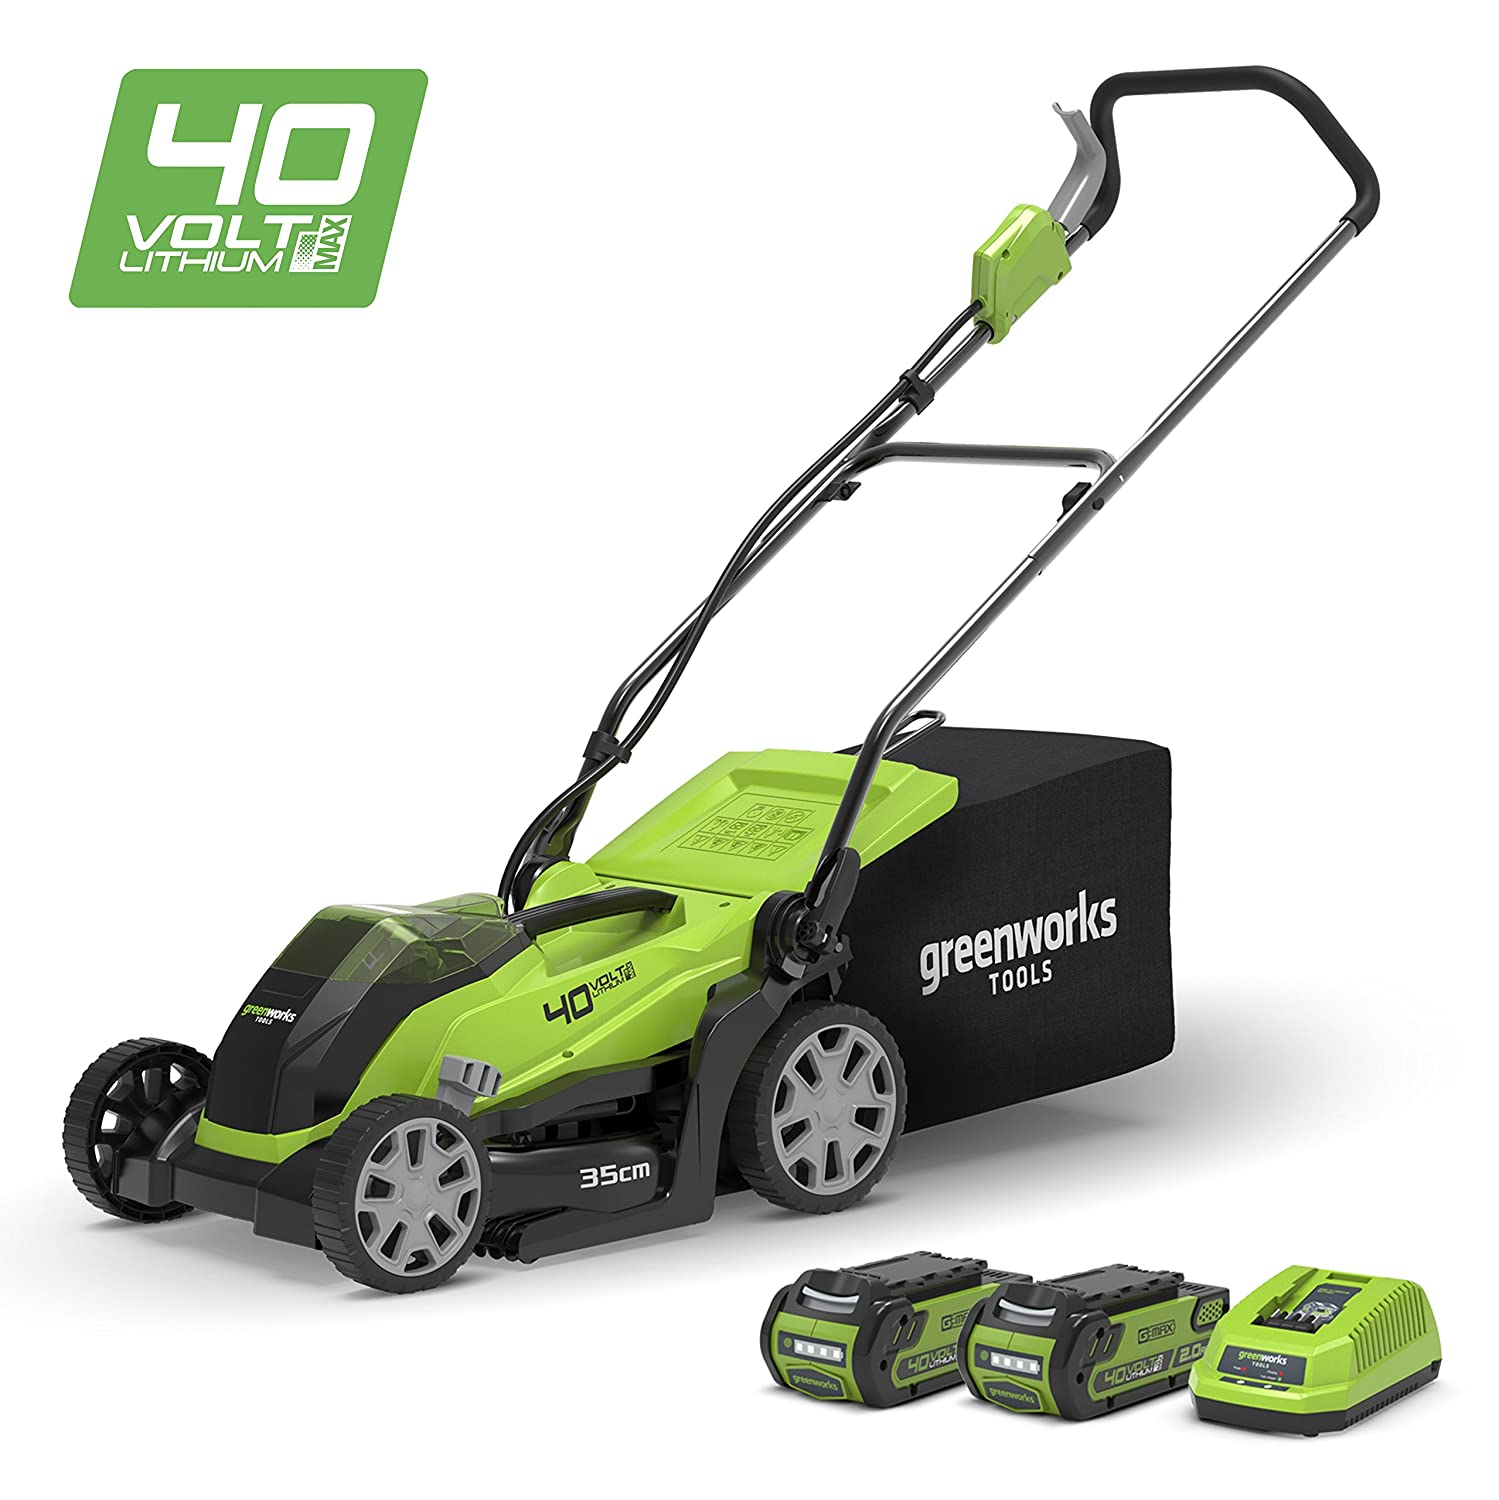 Mulching Lawn Mower Reviews Top 5 In 2019 2020